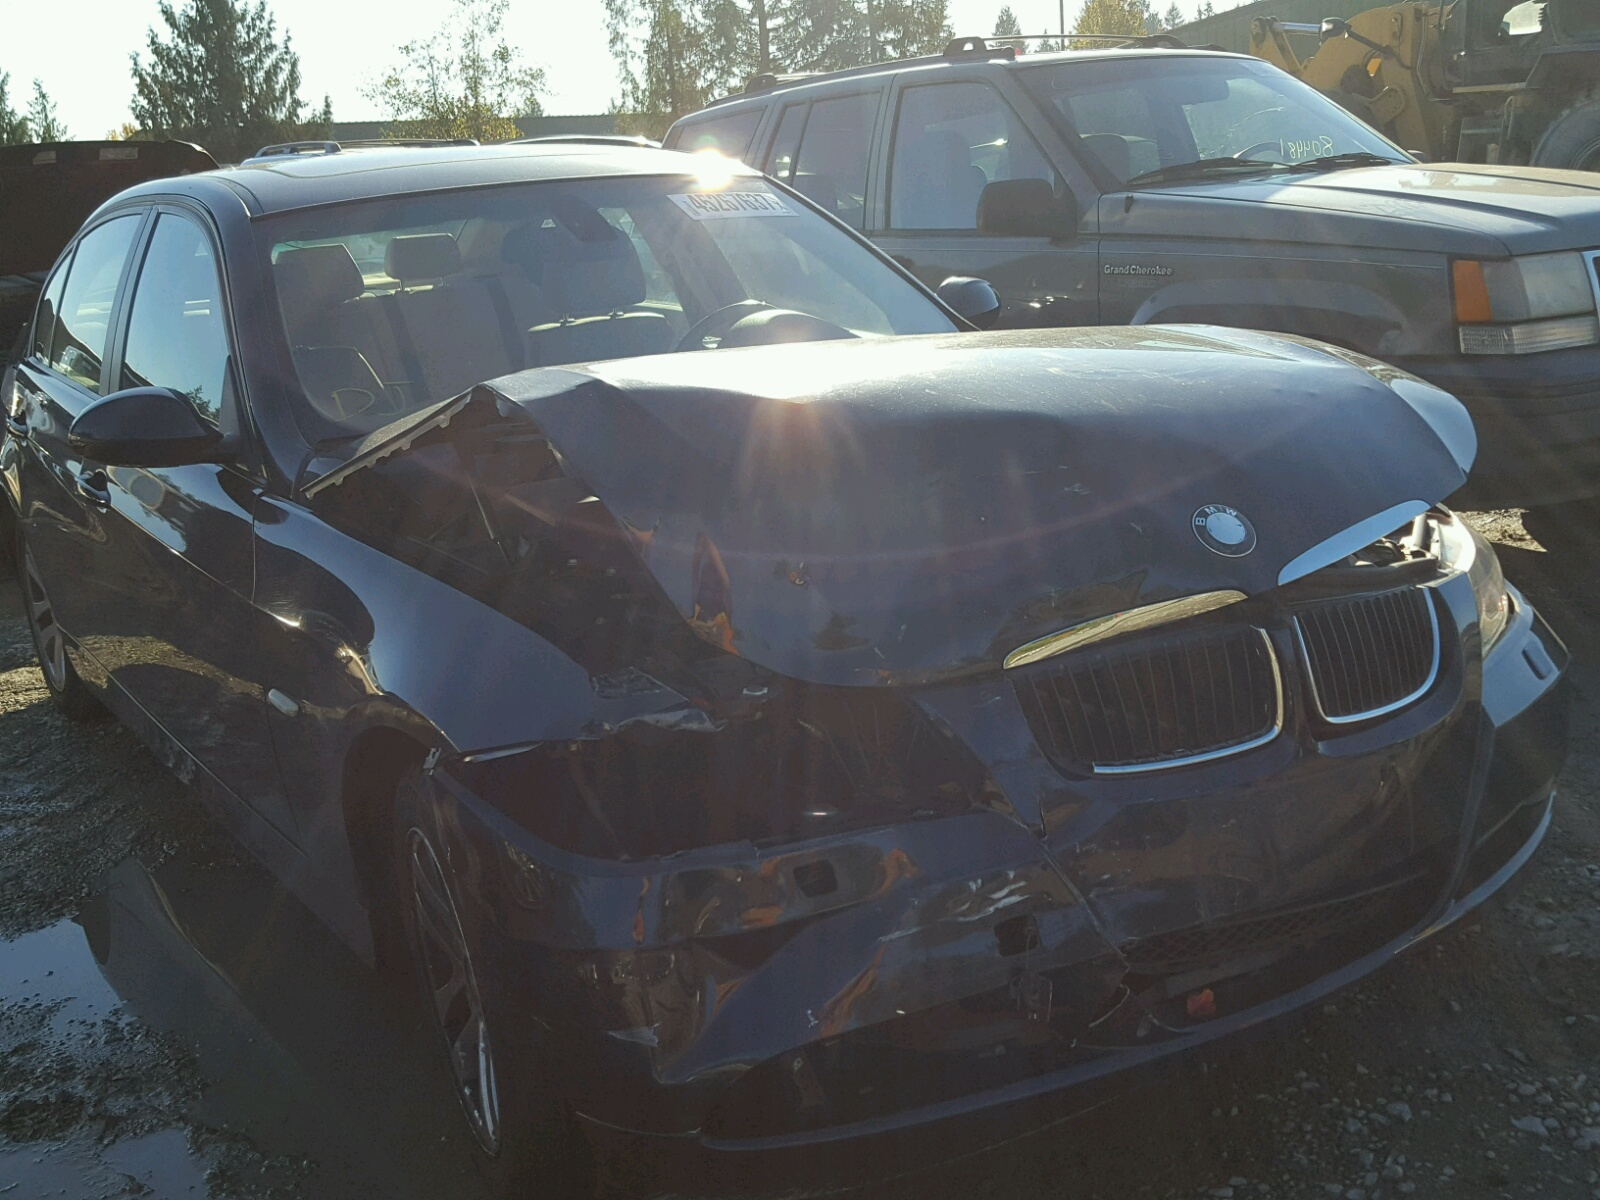 Auto Auction Ended On Vin Wbavd33596kl51003 2006 Bmw 330xi In Oh Dayton